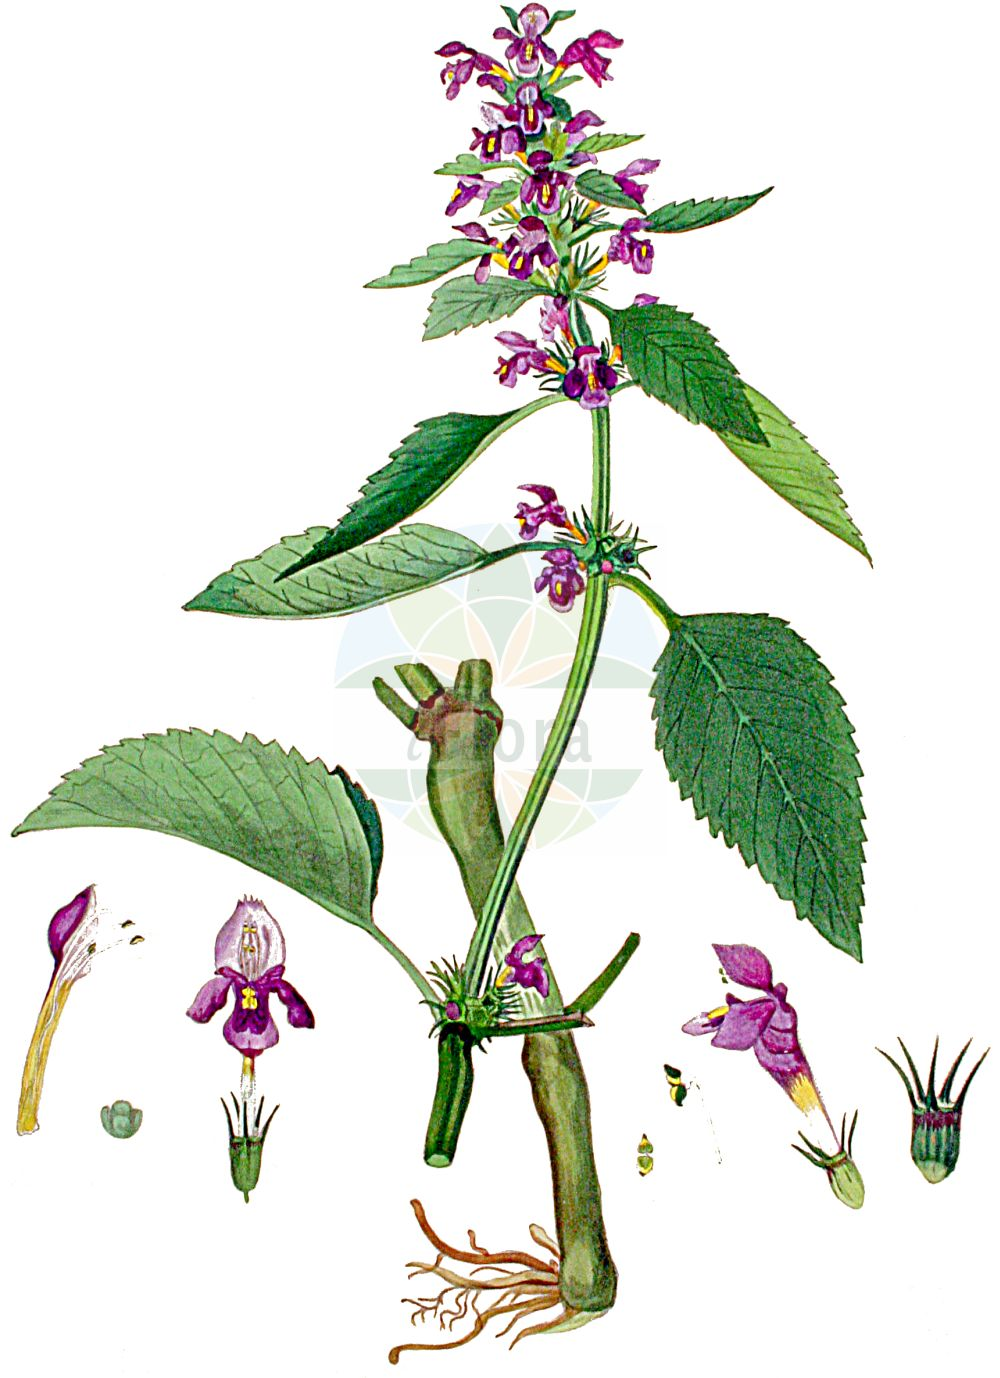 Historische Abbildung von Galeopsis pubescens (Weichhaariger Hohlzahn - Downy Hemp-nettle). Das Bild zeigt Blatt, Bluete, Frucht und Same. ---- Historical Drawing of Galeopsis pubescens (Weichhaariger Hohlzahn - Downy Hemp-nettle).The image is showing leaf, flower, fruit and seed.(Galeopsis pubescens,Weichhaariger Hohlzahn,Downy Hemp-nettle,Galeopsis murriana,Galeopsis pubescens,Galeopsis subspeciosa,Galeopsis variegata,Galeopsis walteriana,Weichhaariger Hohlzahn,Flaum-Hohlzahn,Downy Hemp-nettle,Hairy Hemp-nettle,Galeopsis,Hohlzahn,Hempnettle,Lamiaceae,Lippenbluetengewaechse,Lippenbluetler,Nettle family,Blatt,Bluete,Frucht,Same,leaf,flower,fruit,seed,Kops (1800-1934))